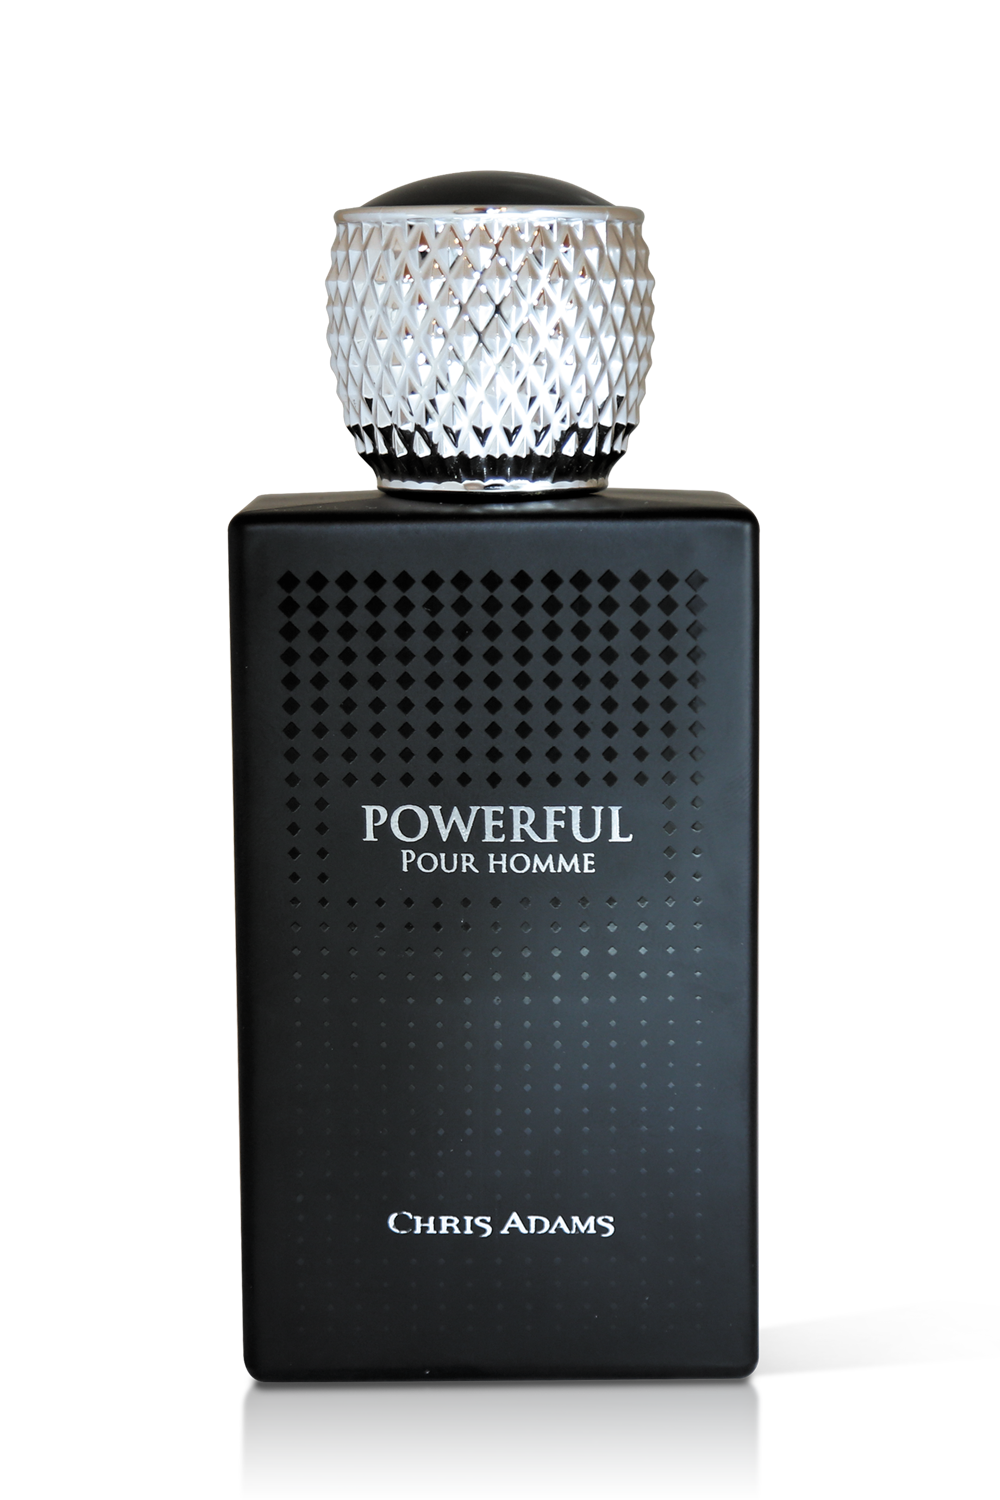 POWERFUL spray perfume